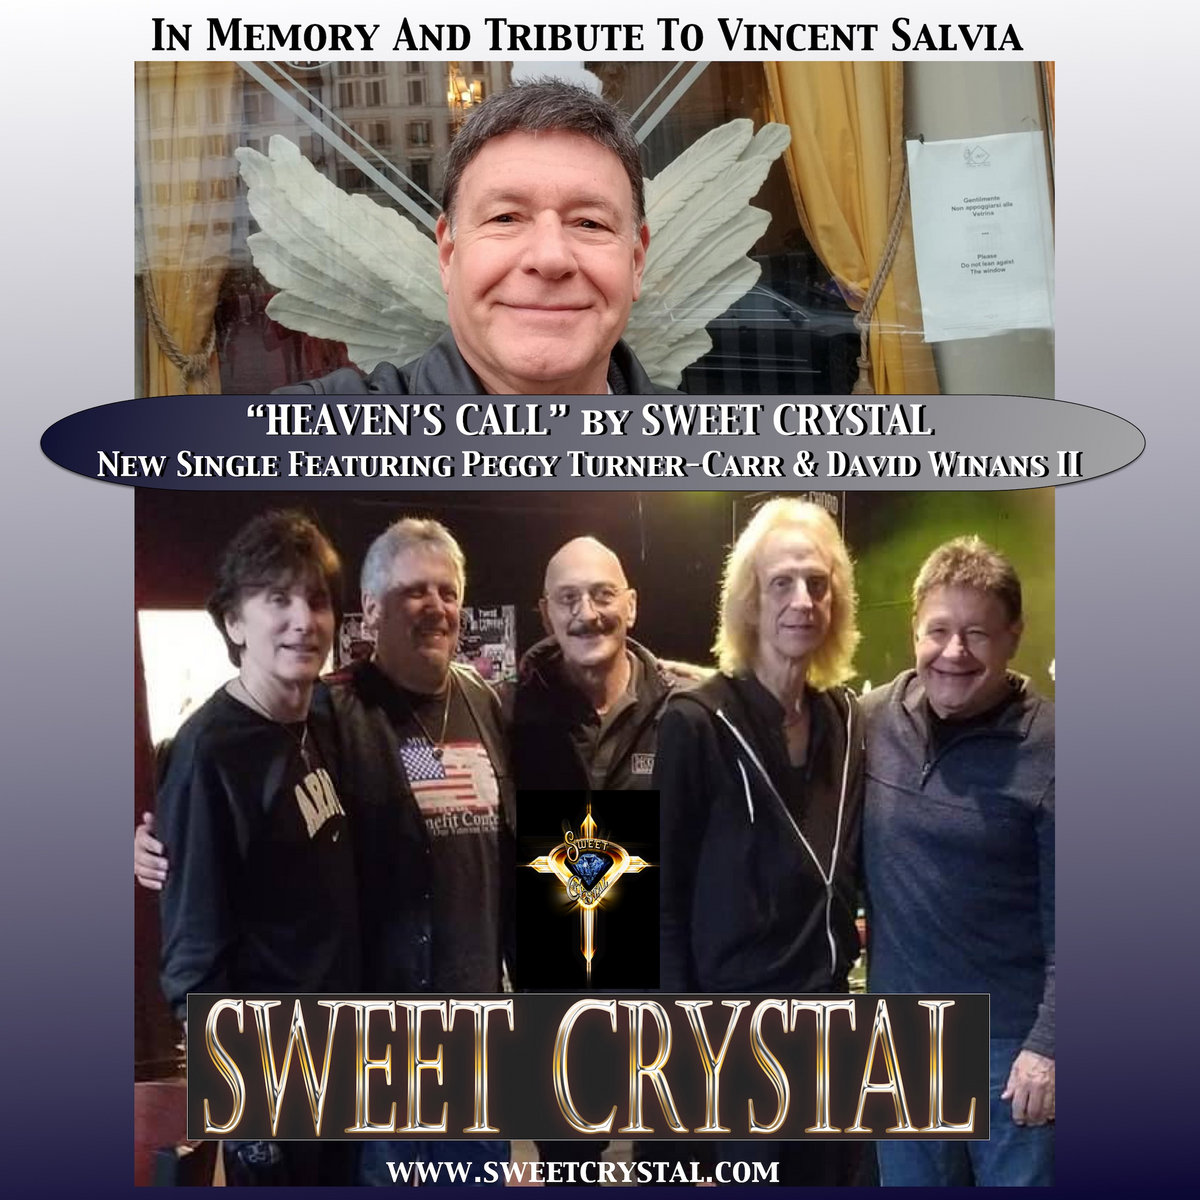 Heaven's Call (Featuring Peggy Turner-Carr, David Winans II) by Sweet Crystal